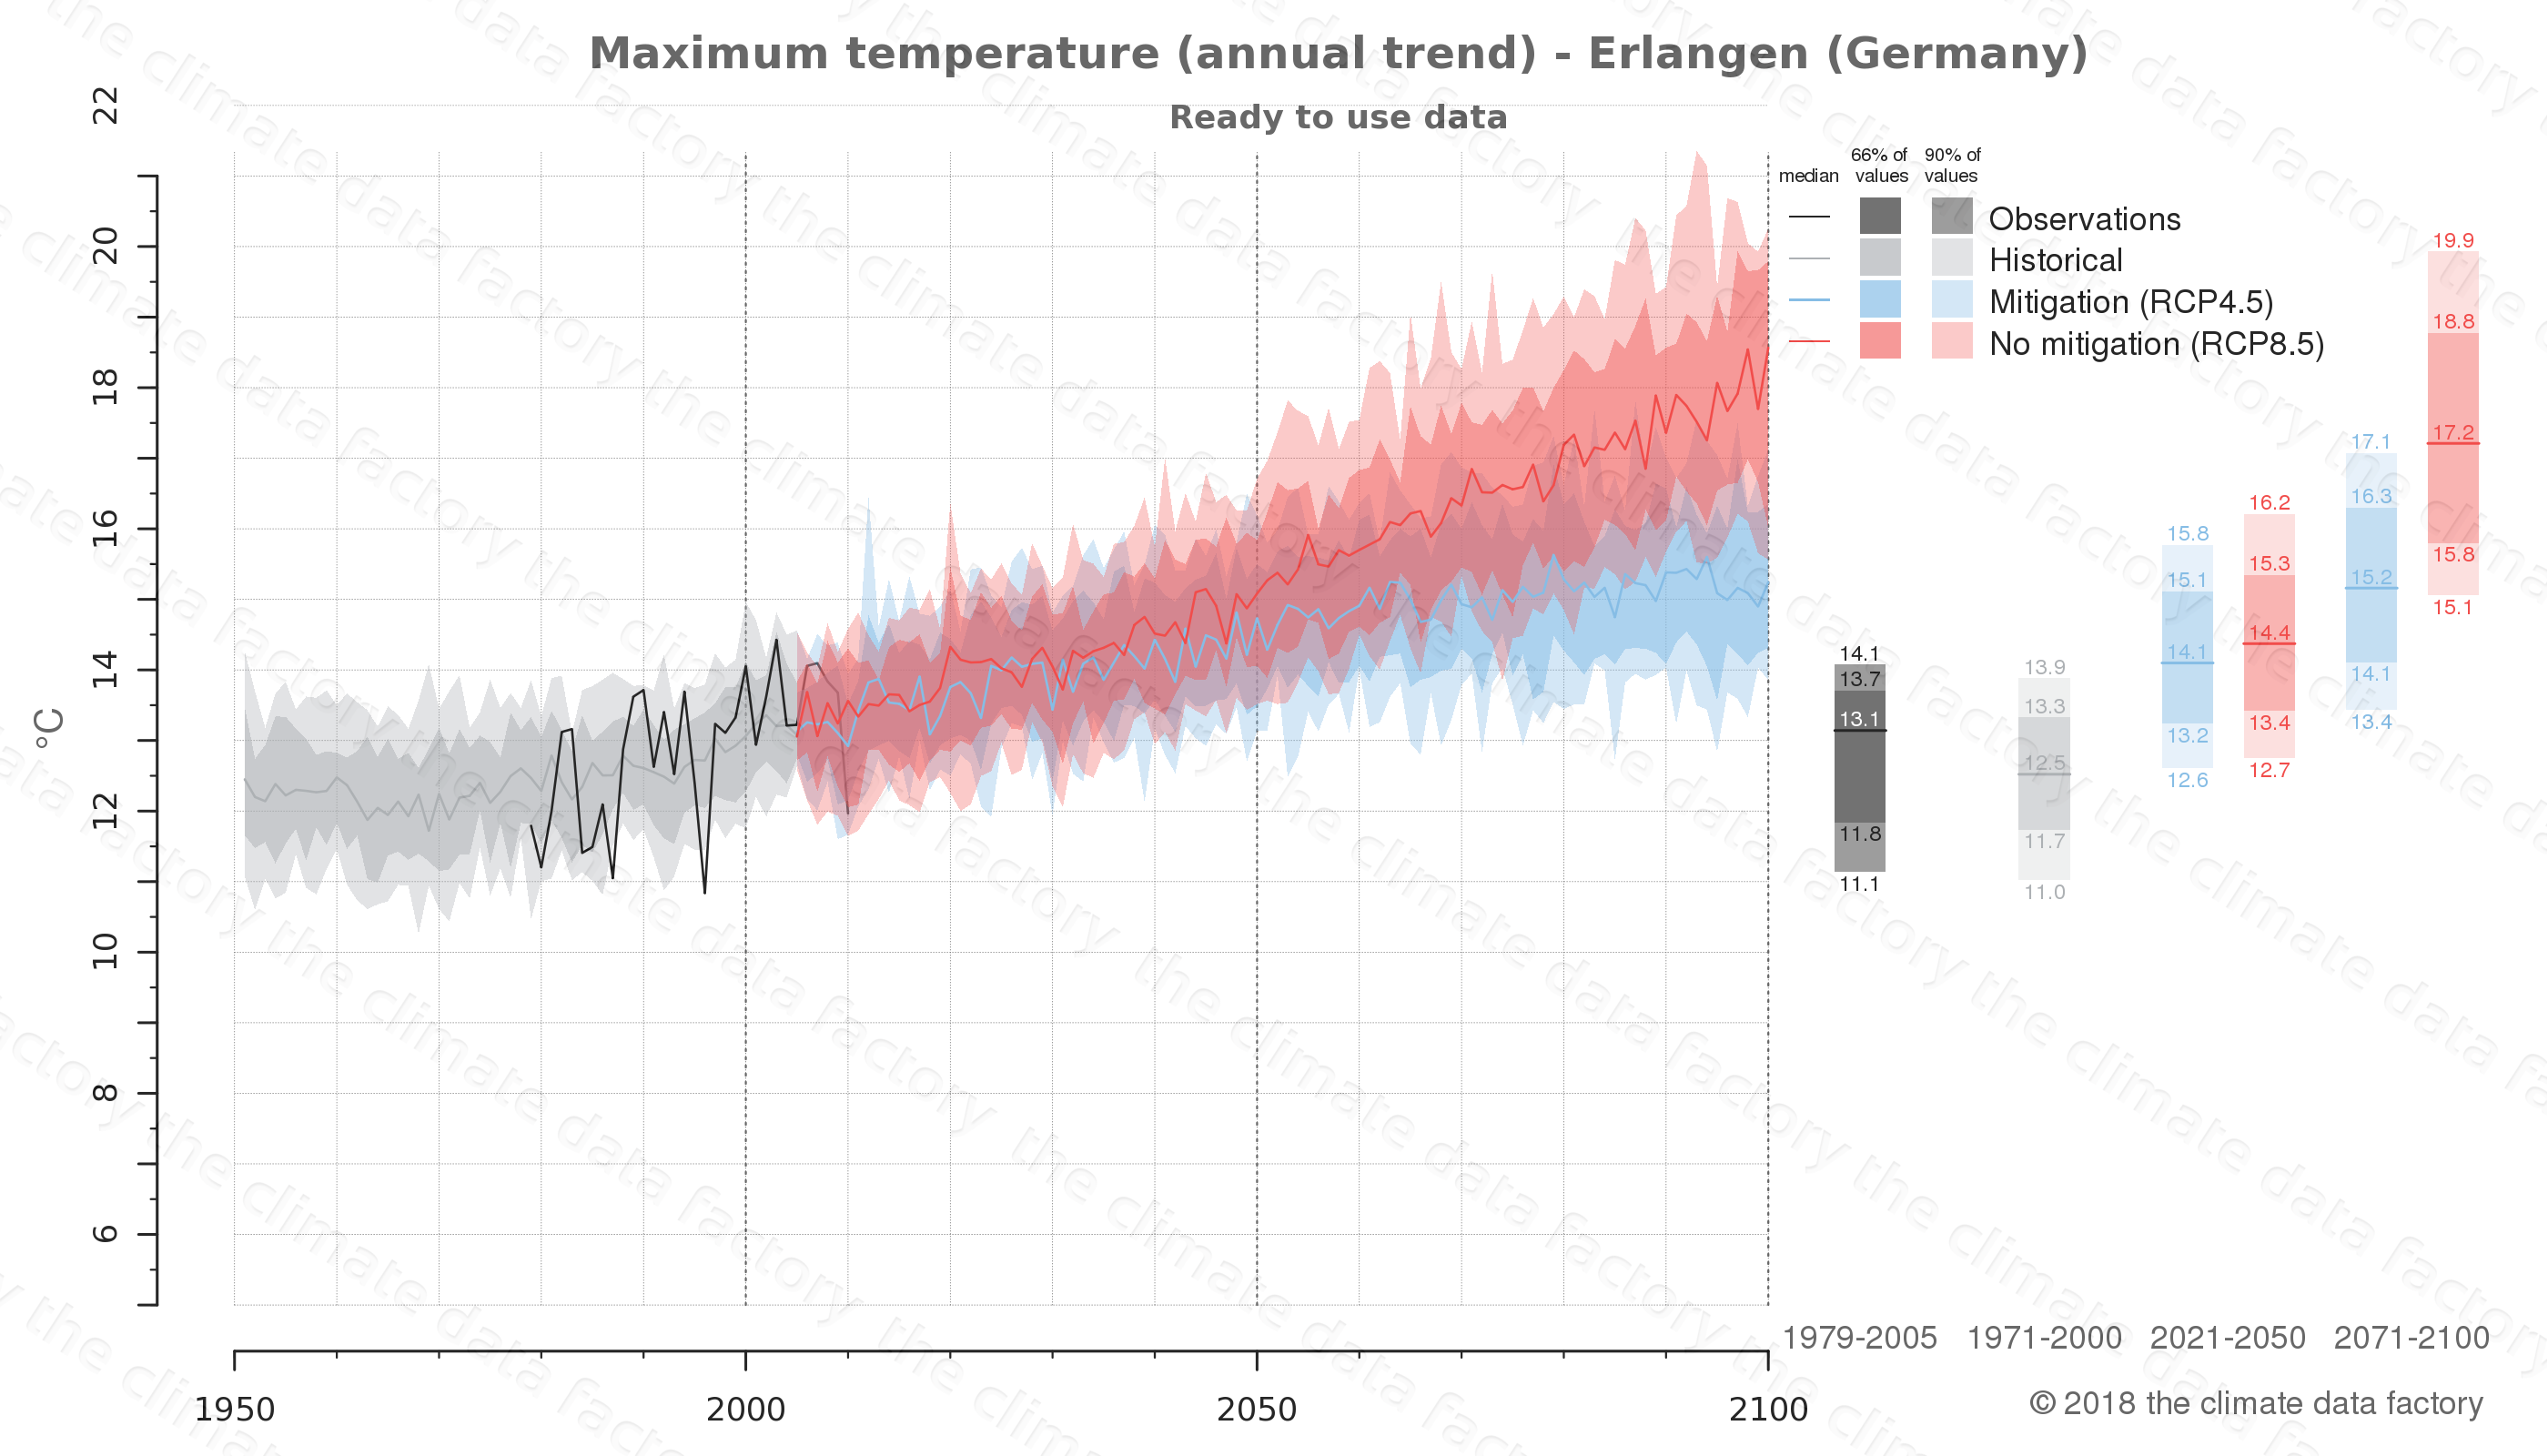 climate change data policy adaptation climate graph city data maximum-temperature erlangen germany